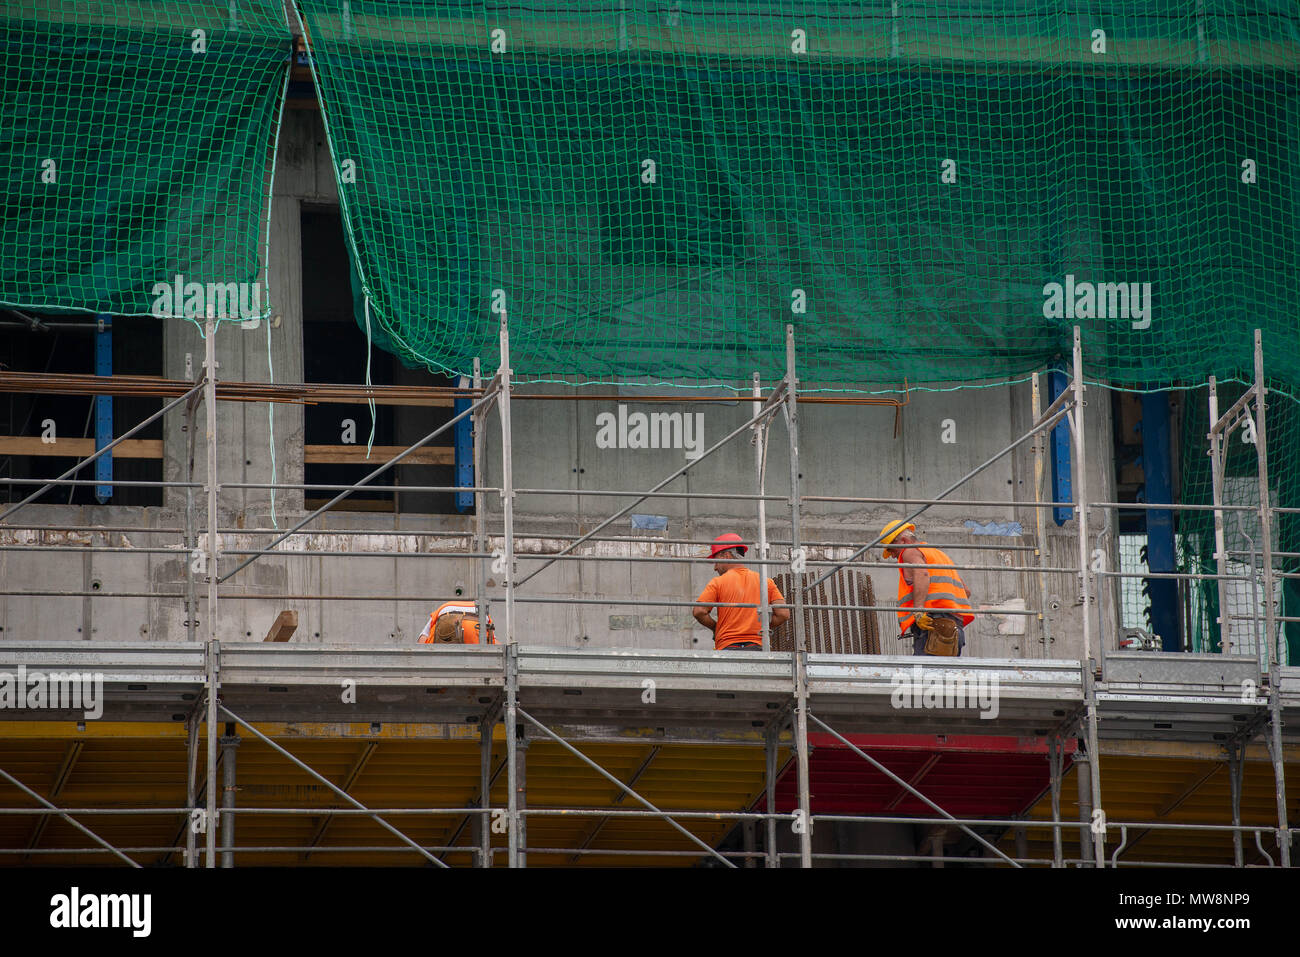 Milan Italy May 30th 2018: construction of the new futuristic district, three towers - Stock Image